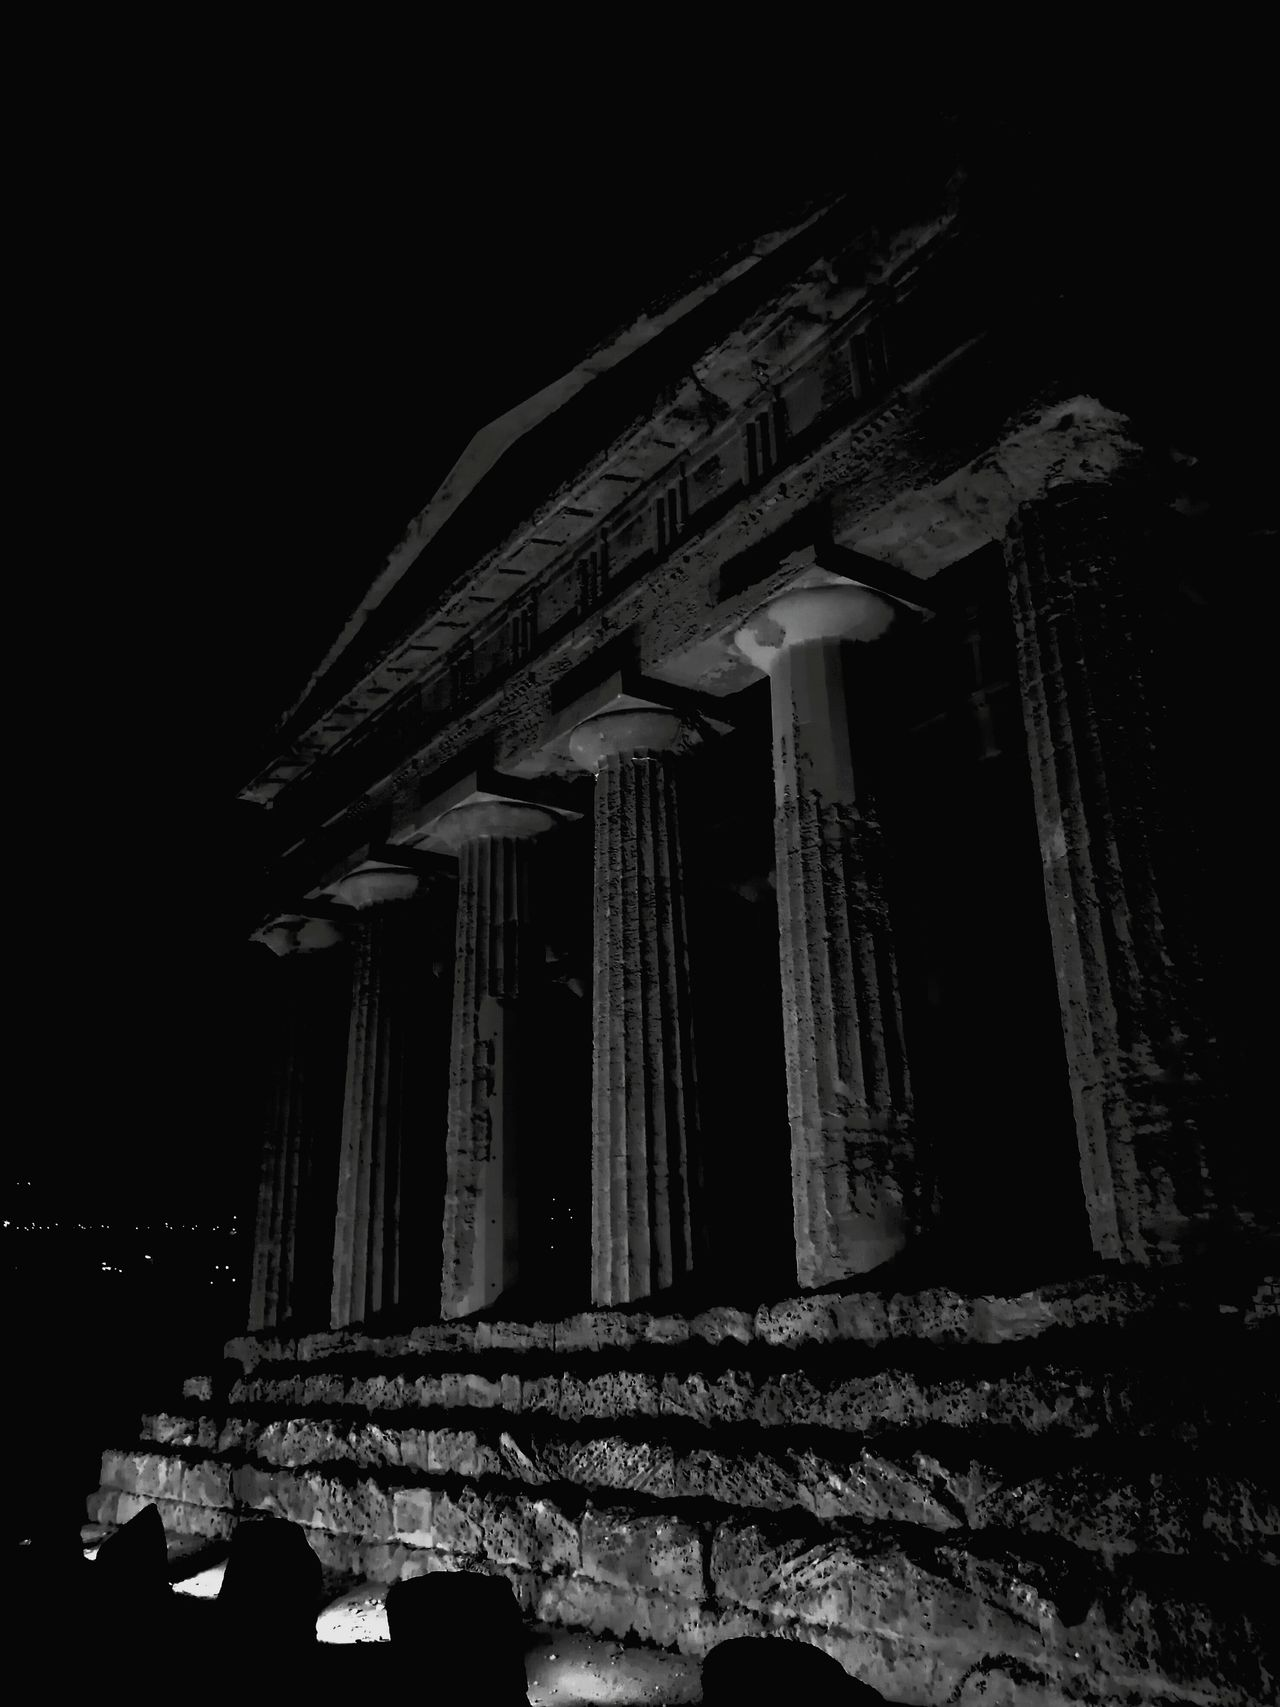 Sicily Italy Agrigento Valle Dei Templi Black And White Black & White MagnaGrecia History Colonnade Famous Place Architectural Column Architecture Ancient Civilization Tourism Monochrome Monochrome Photography Monochrome Photograhy